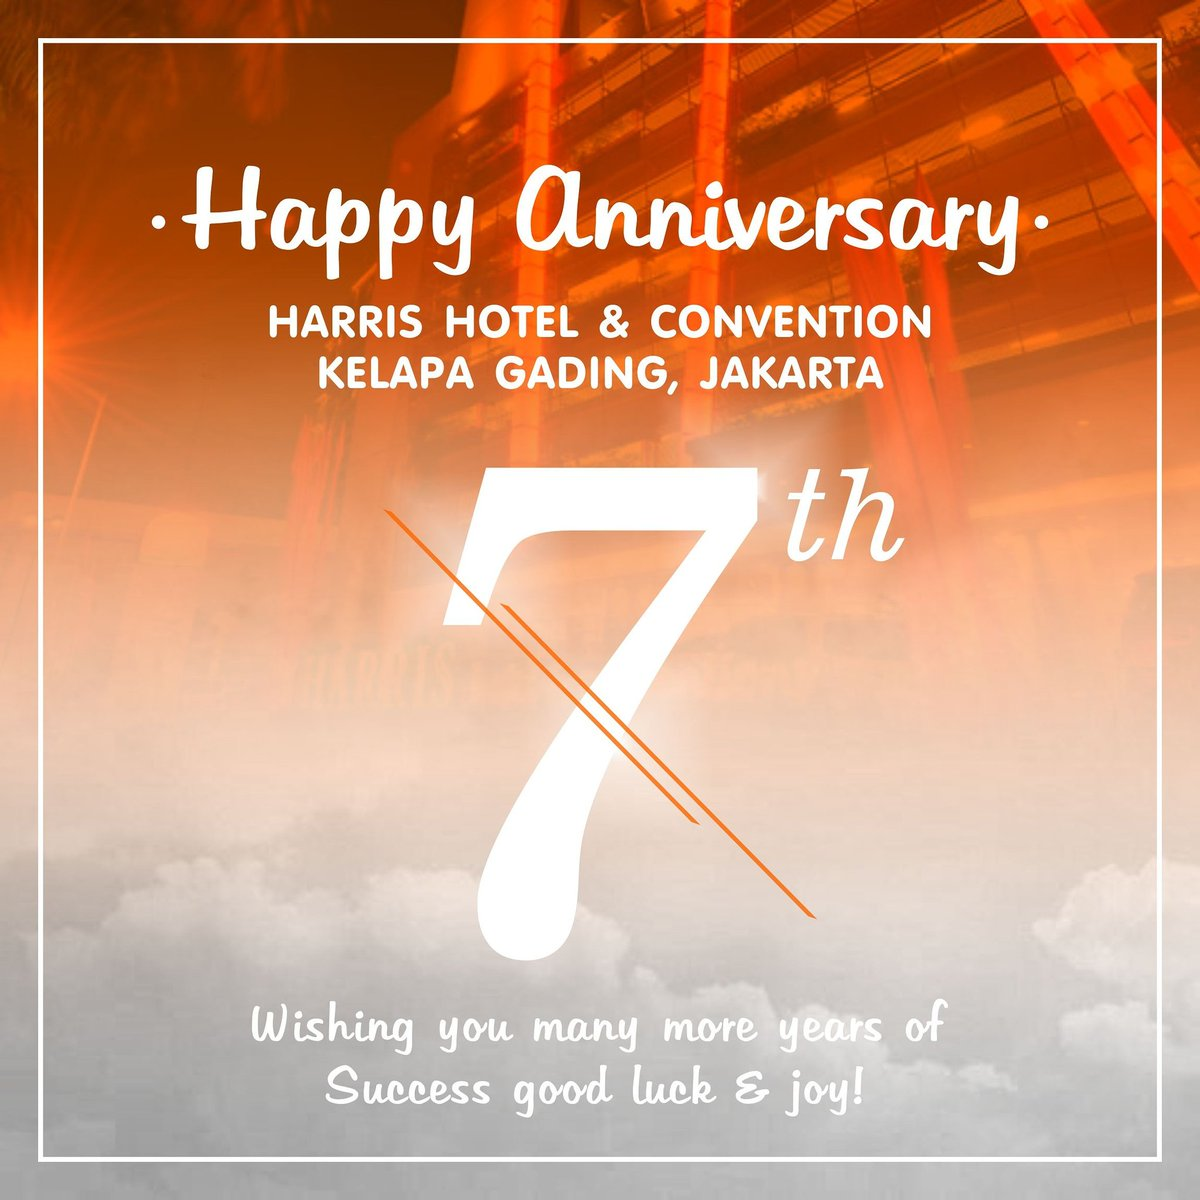 Harris Pontianak On Twitter Happy Anniversary Harris Hotel Convention Kelapa Gading Jakarta Here S To Your 7 Years Of Togetherness May Your Success Grow With Time Https T Co Wy25gfekgg